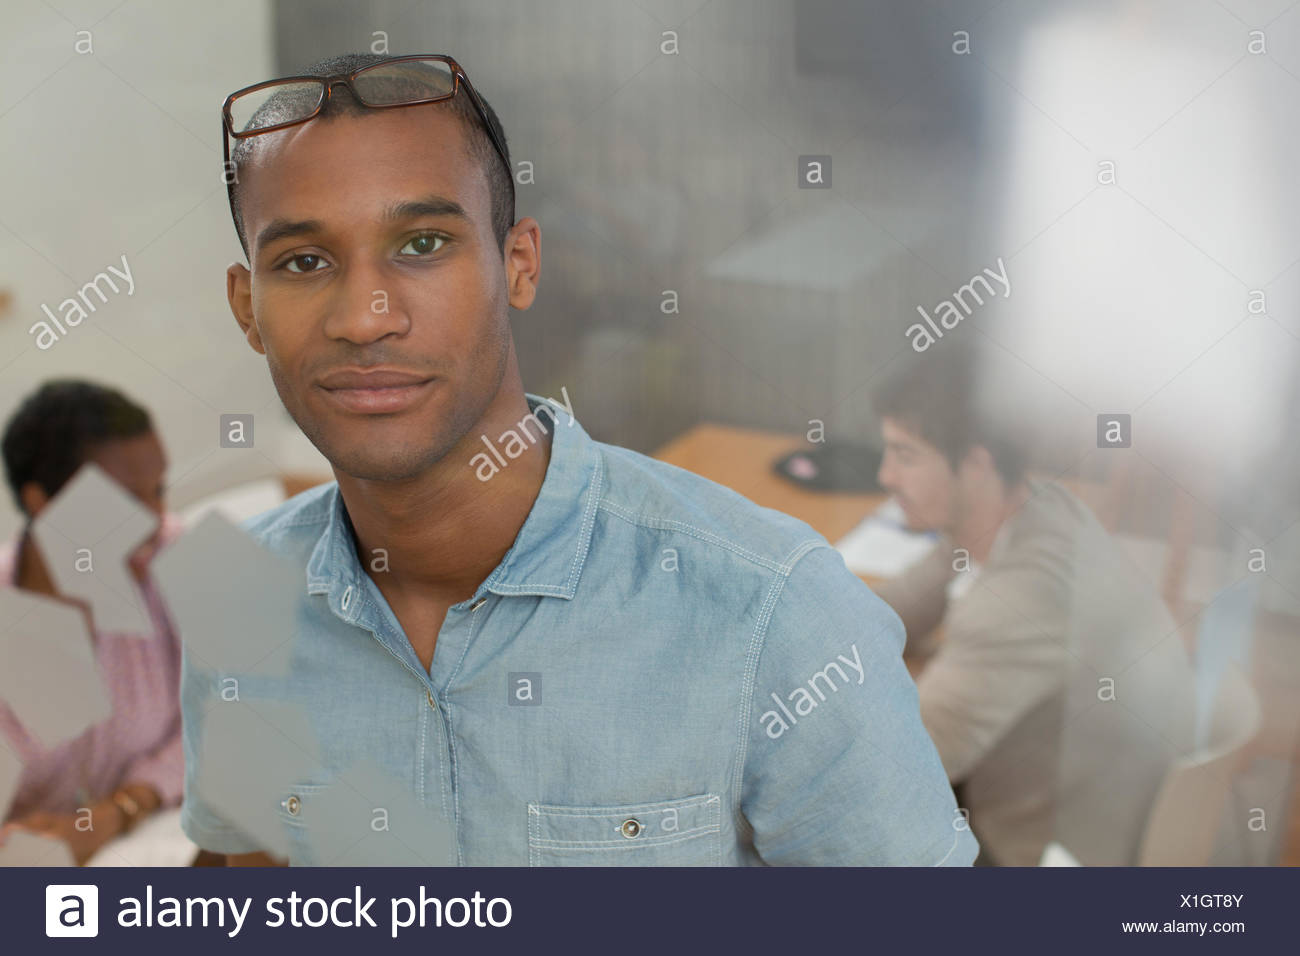 Portrait confident businessman in conference room Photo Stock